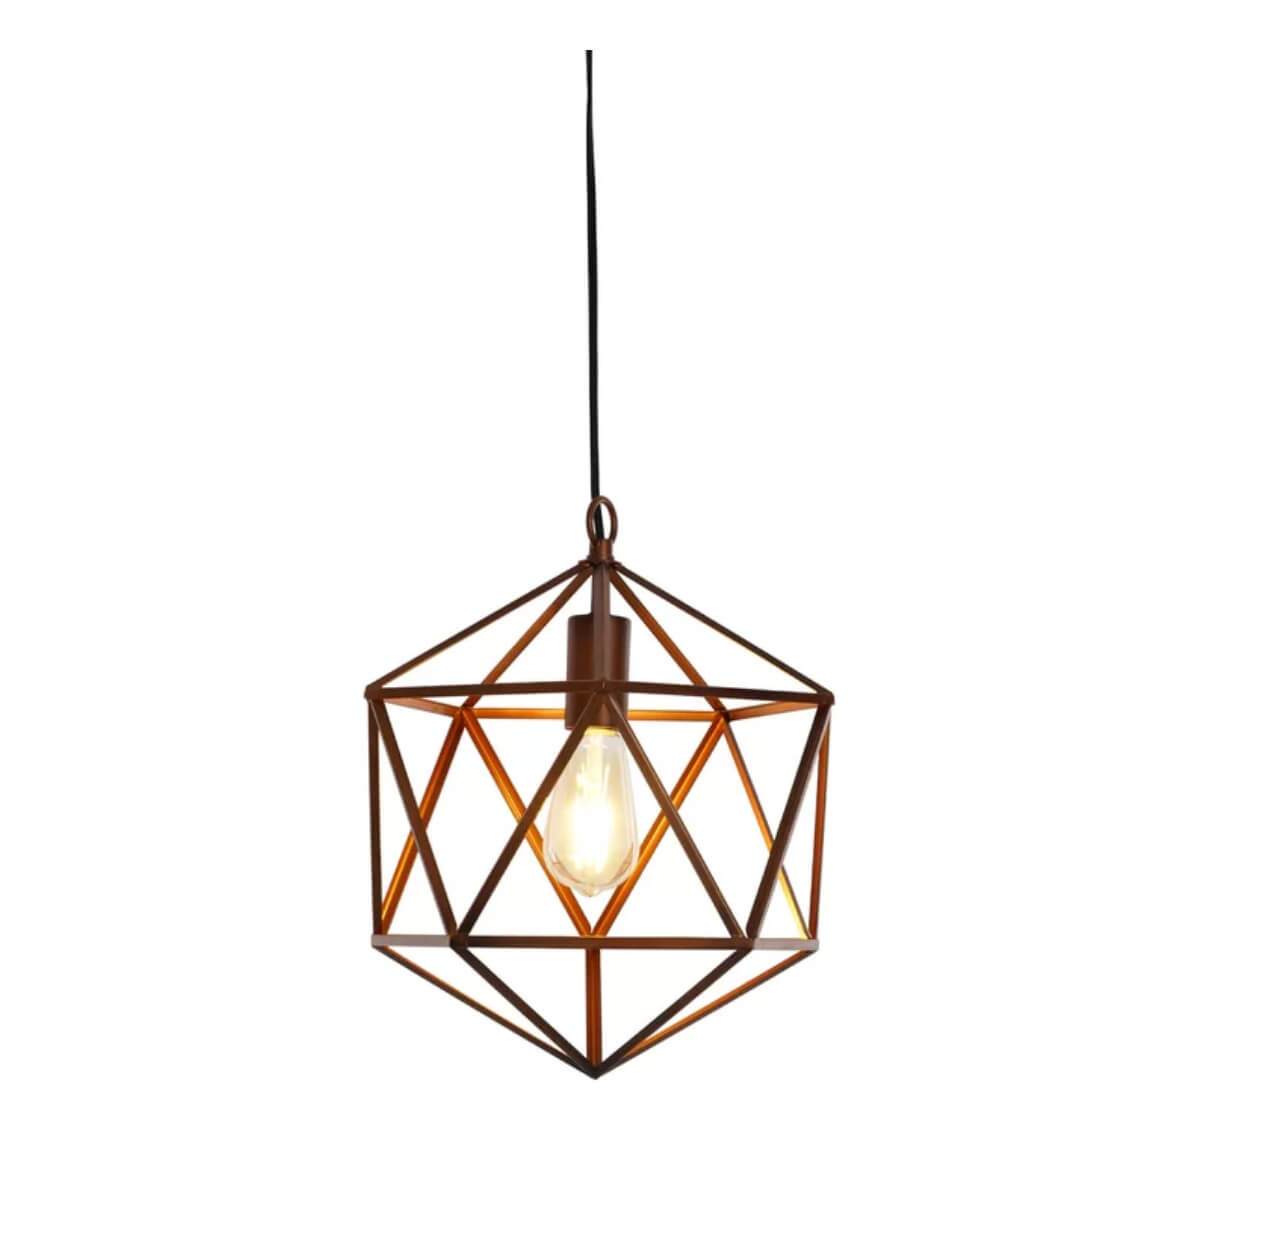 Contemporary bedside pendant